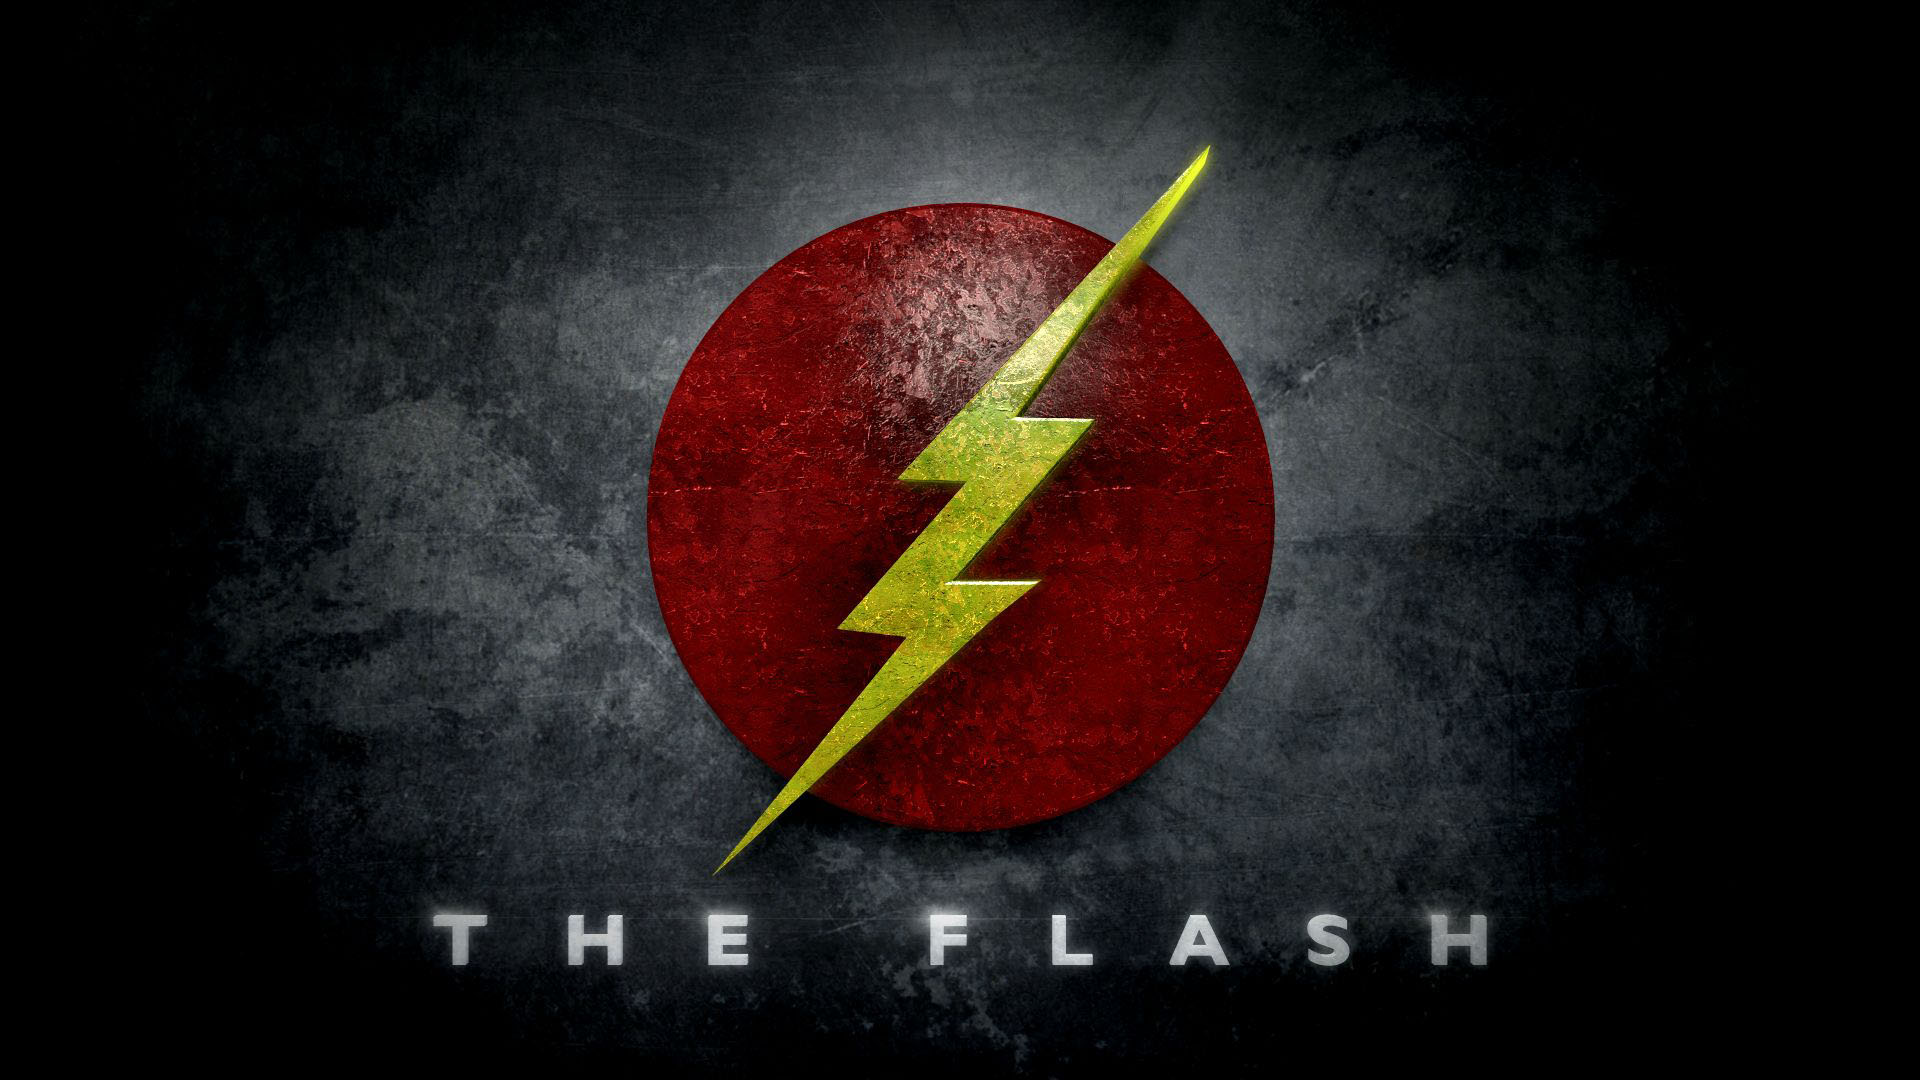 9 the flash logo hd wallpapers free download for Ecran pc mat